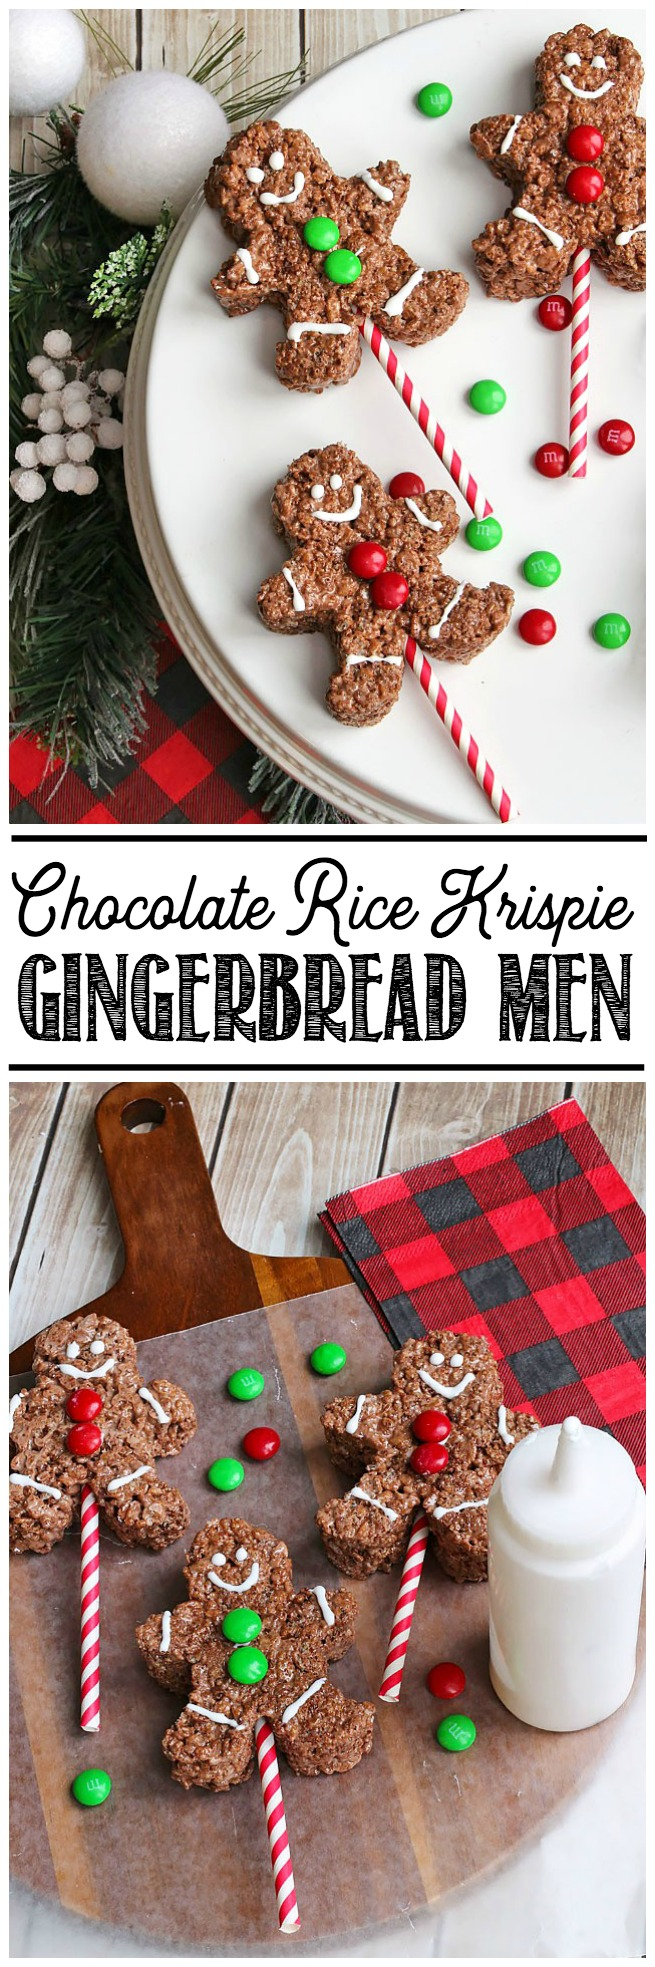 Chocolate Rice Krispie Treats Gingerbread